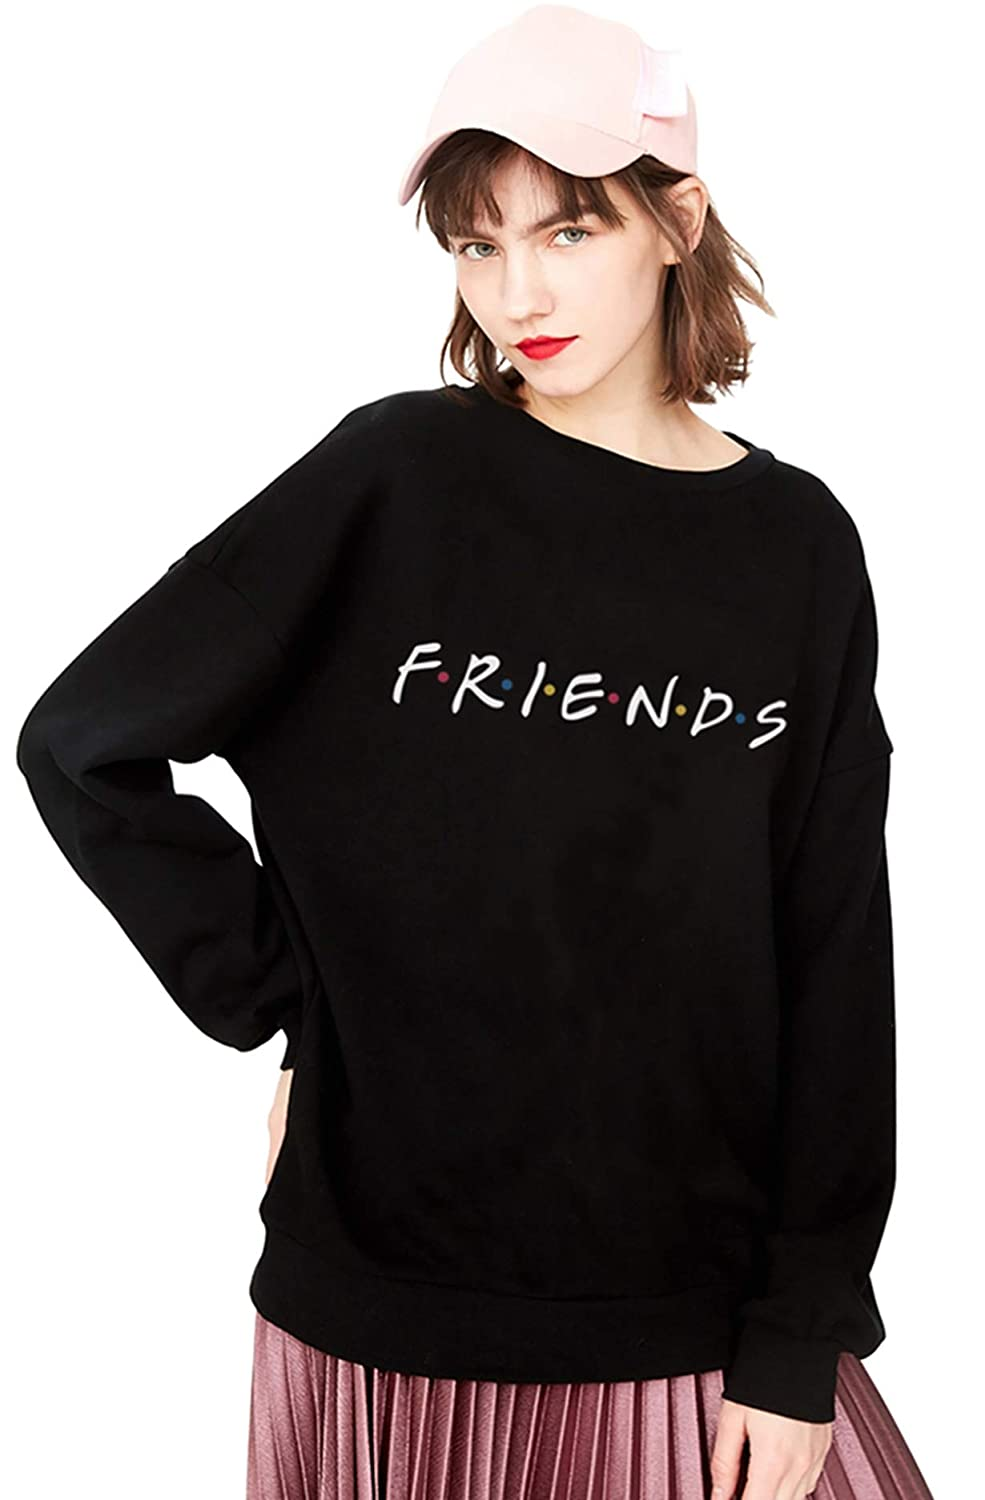 6b46b8832 Sweater Best Friend Hoodie Cotton Logo TV Graphic Sweatshirt BFF Round Neck  Friendship for Woman Girl Letters: Amazon.co.uk: Clothing